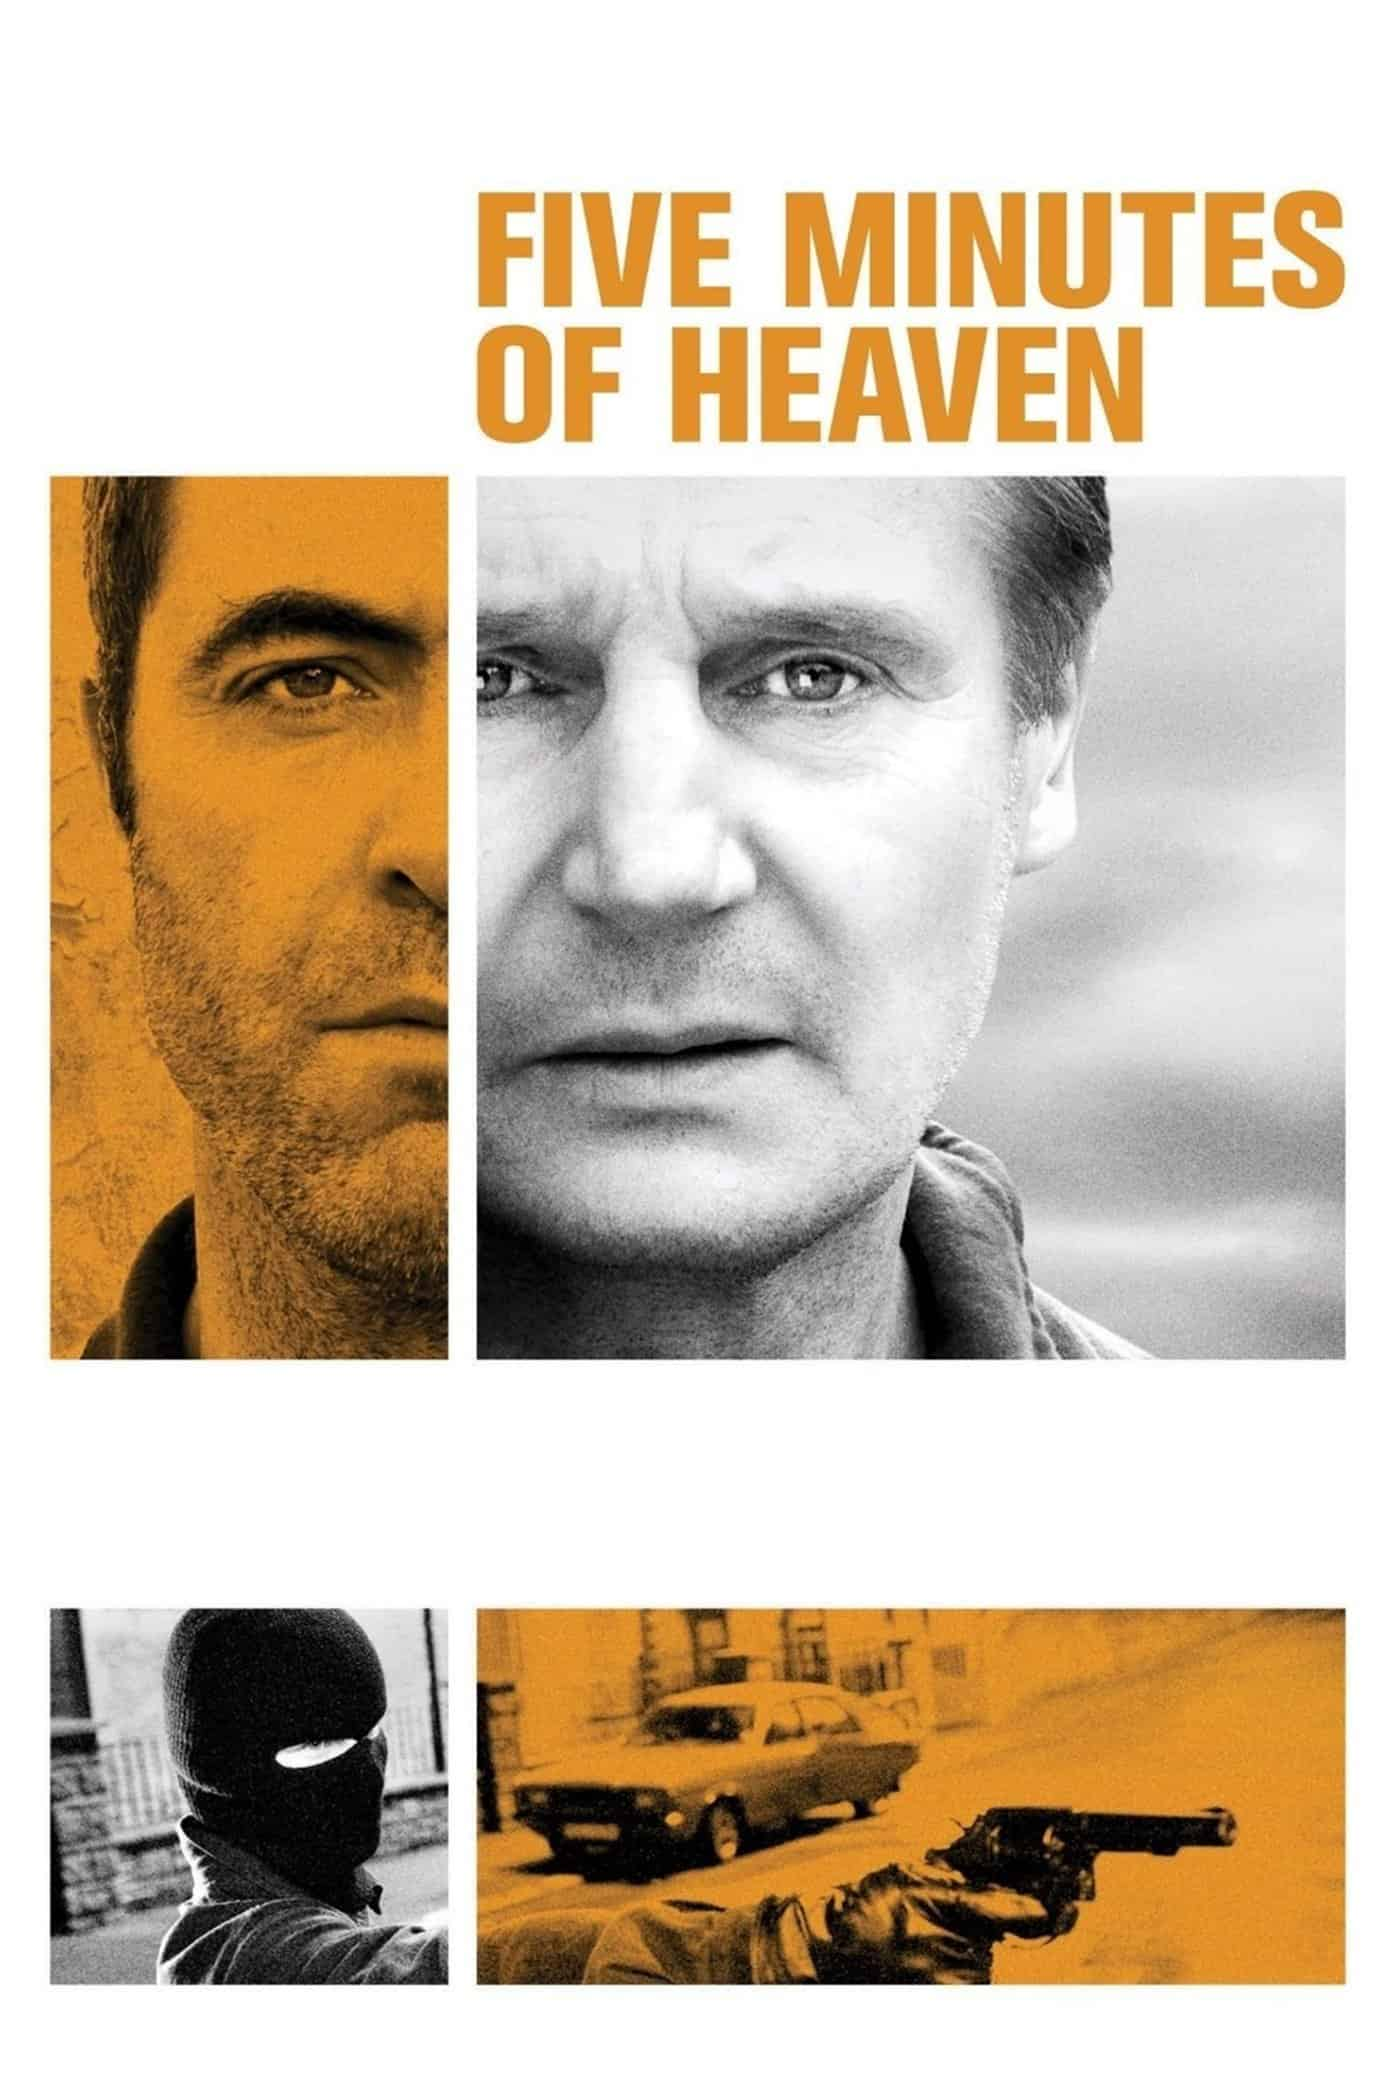 Five Minutes of Heaven, 2009